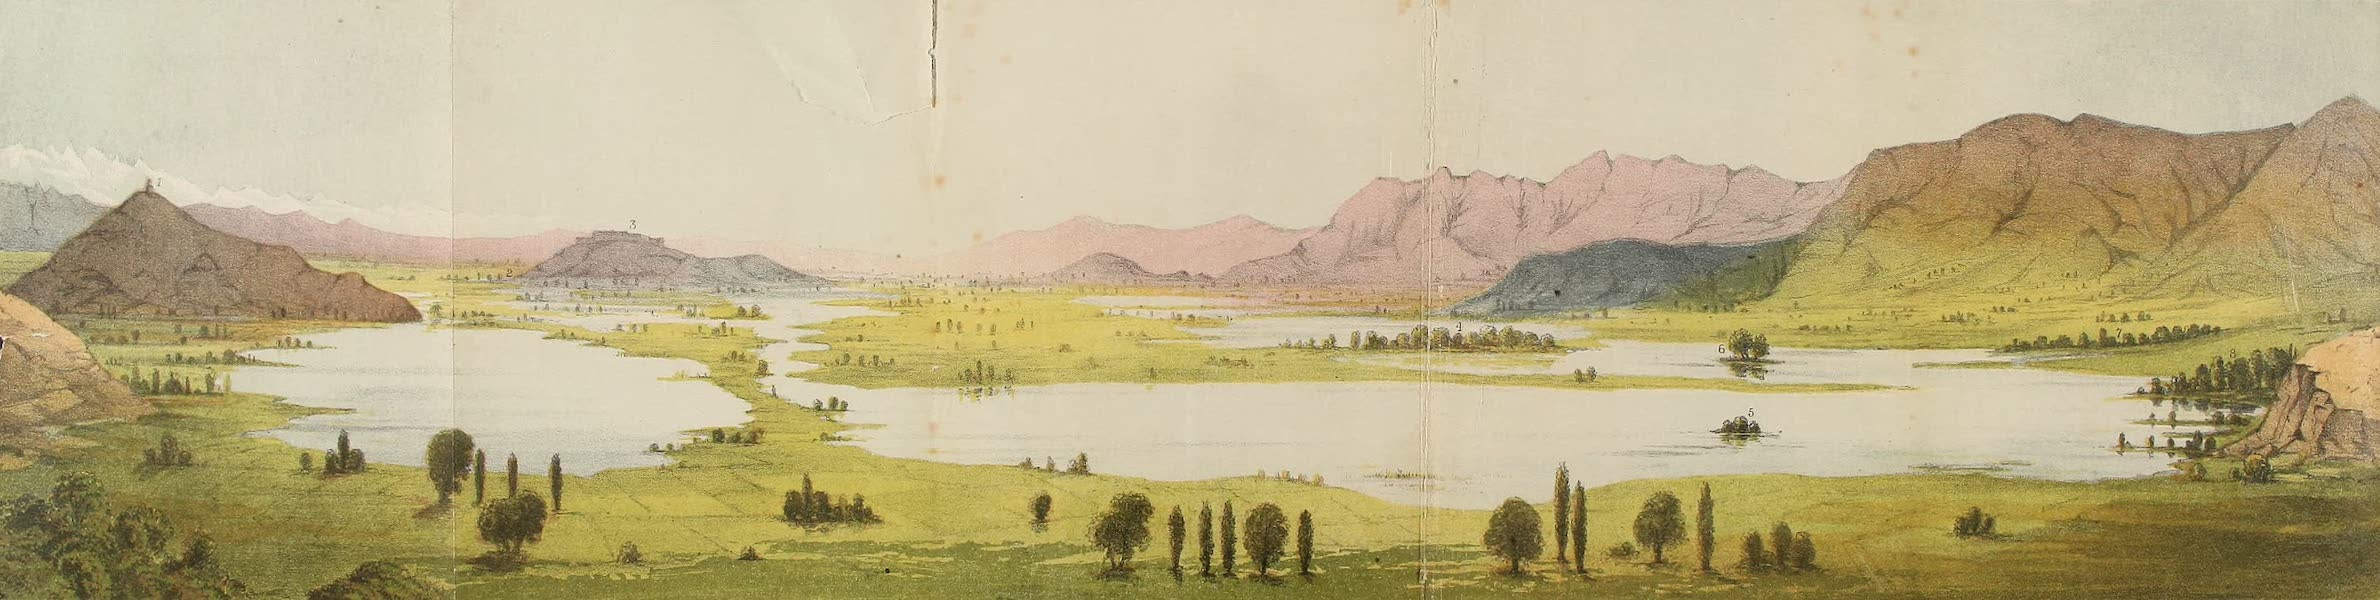 Travels in Ladak, Tartary, and Kashmir - Sketch of Kashmir Valley from Soleiman's seat to the Nishat Bach (1862)